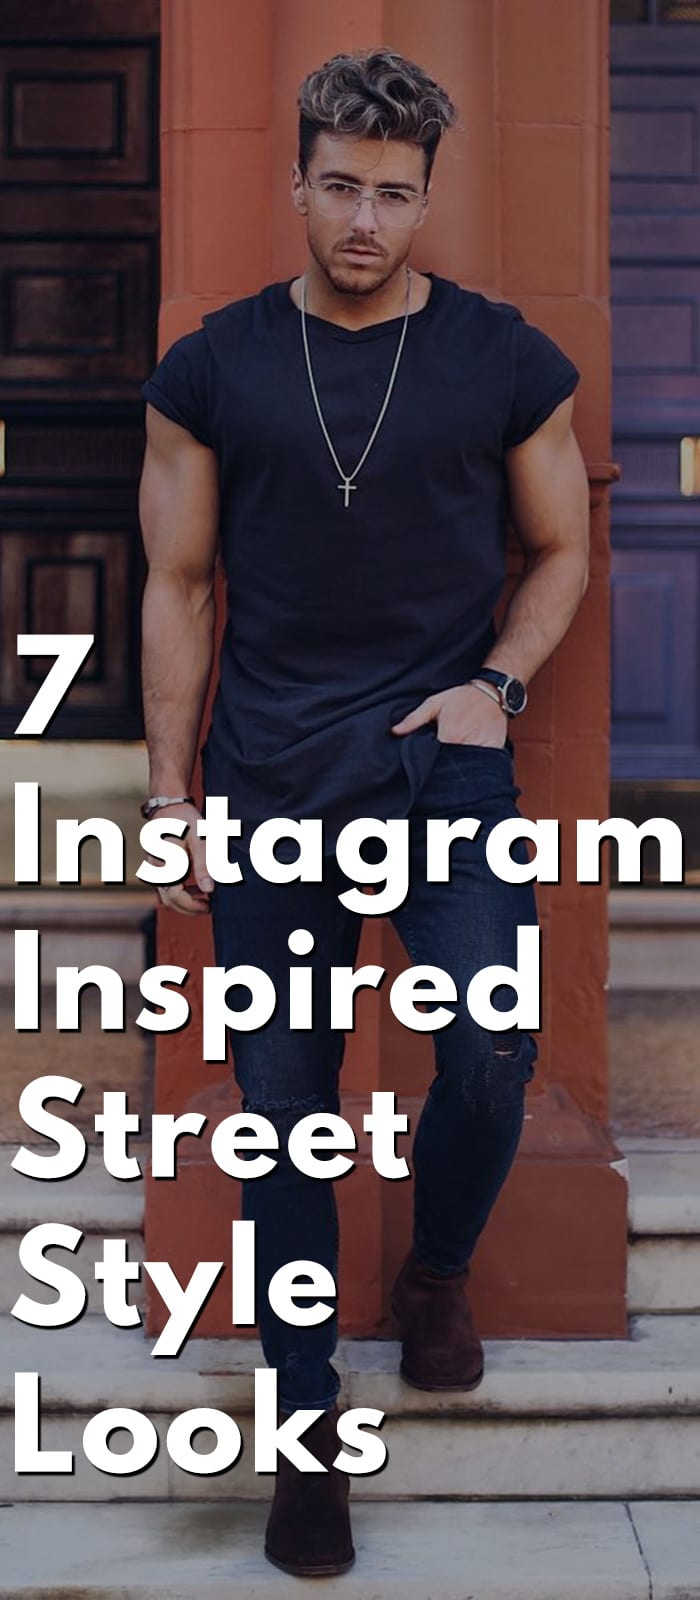 7 Instagram Inspired Street Style Looks